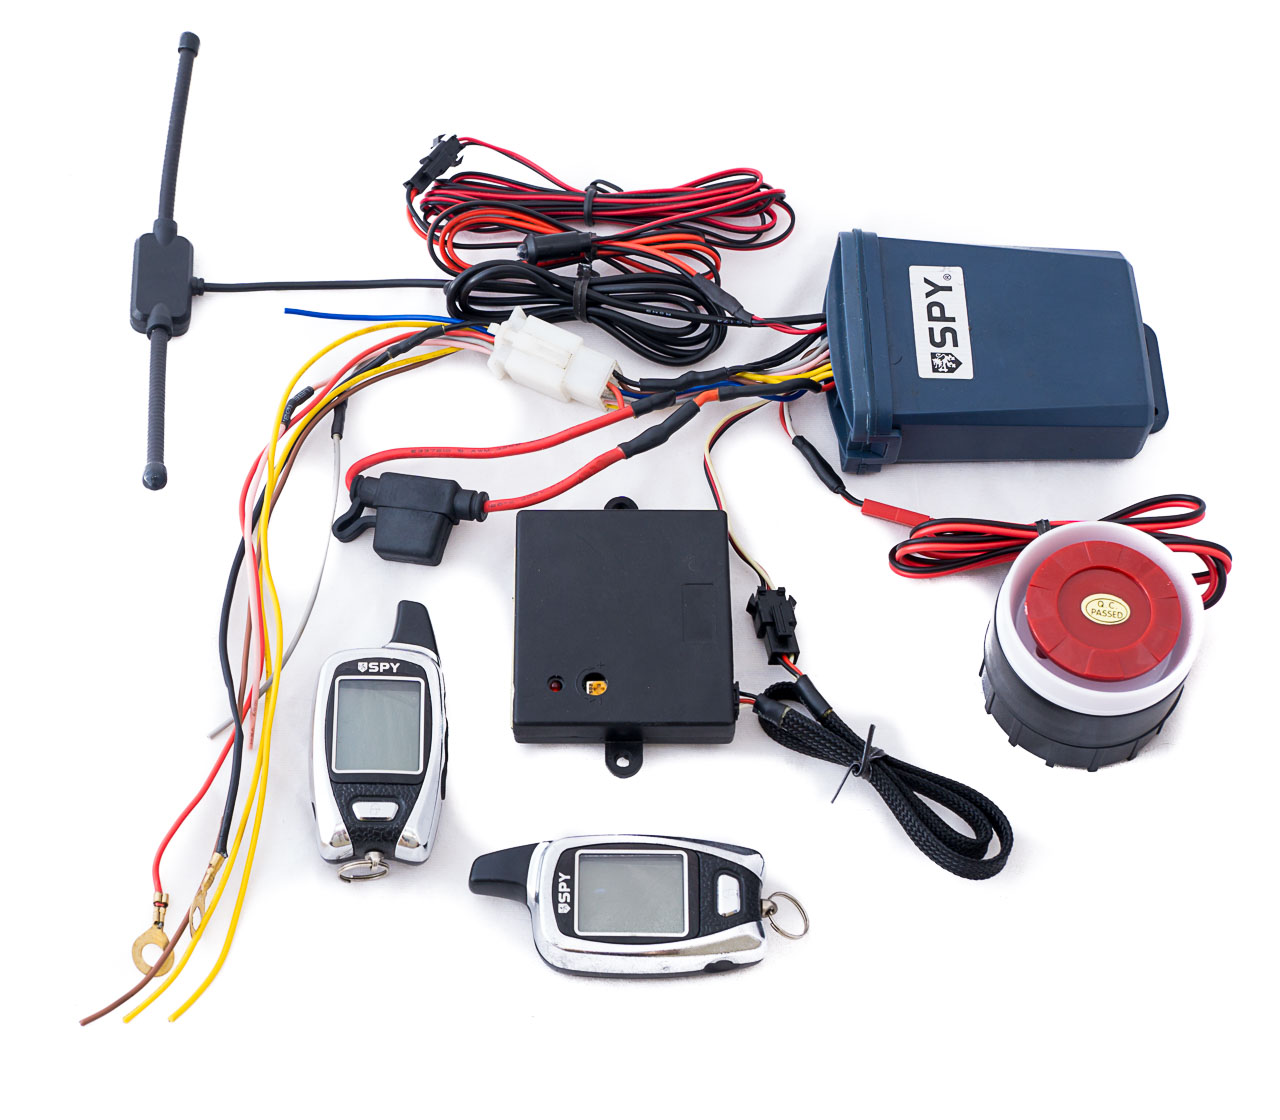 Motorcycle Gps Tracker Alarm Install With Remote Kill Switch Full Boat Wiring Diagram There Are A Bunch Of Different Types Make Sure You Pick The Right Model